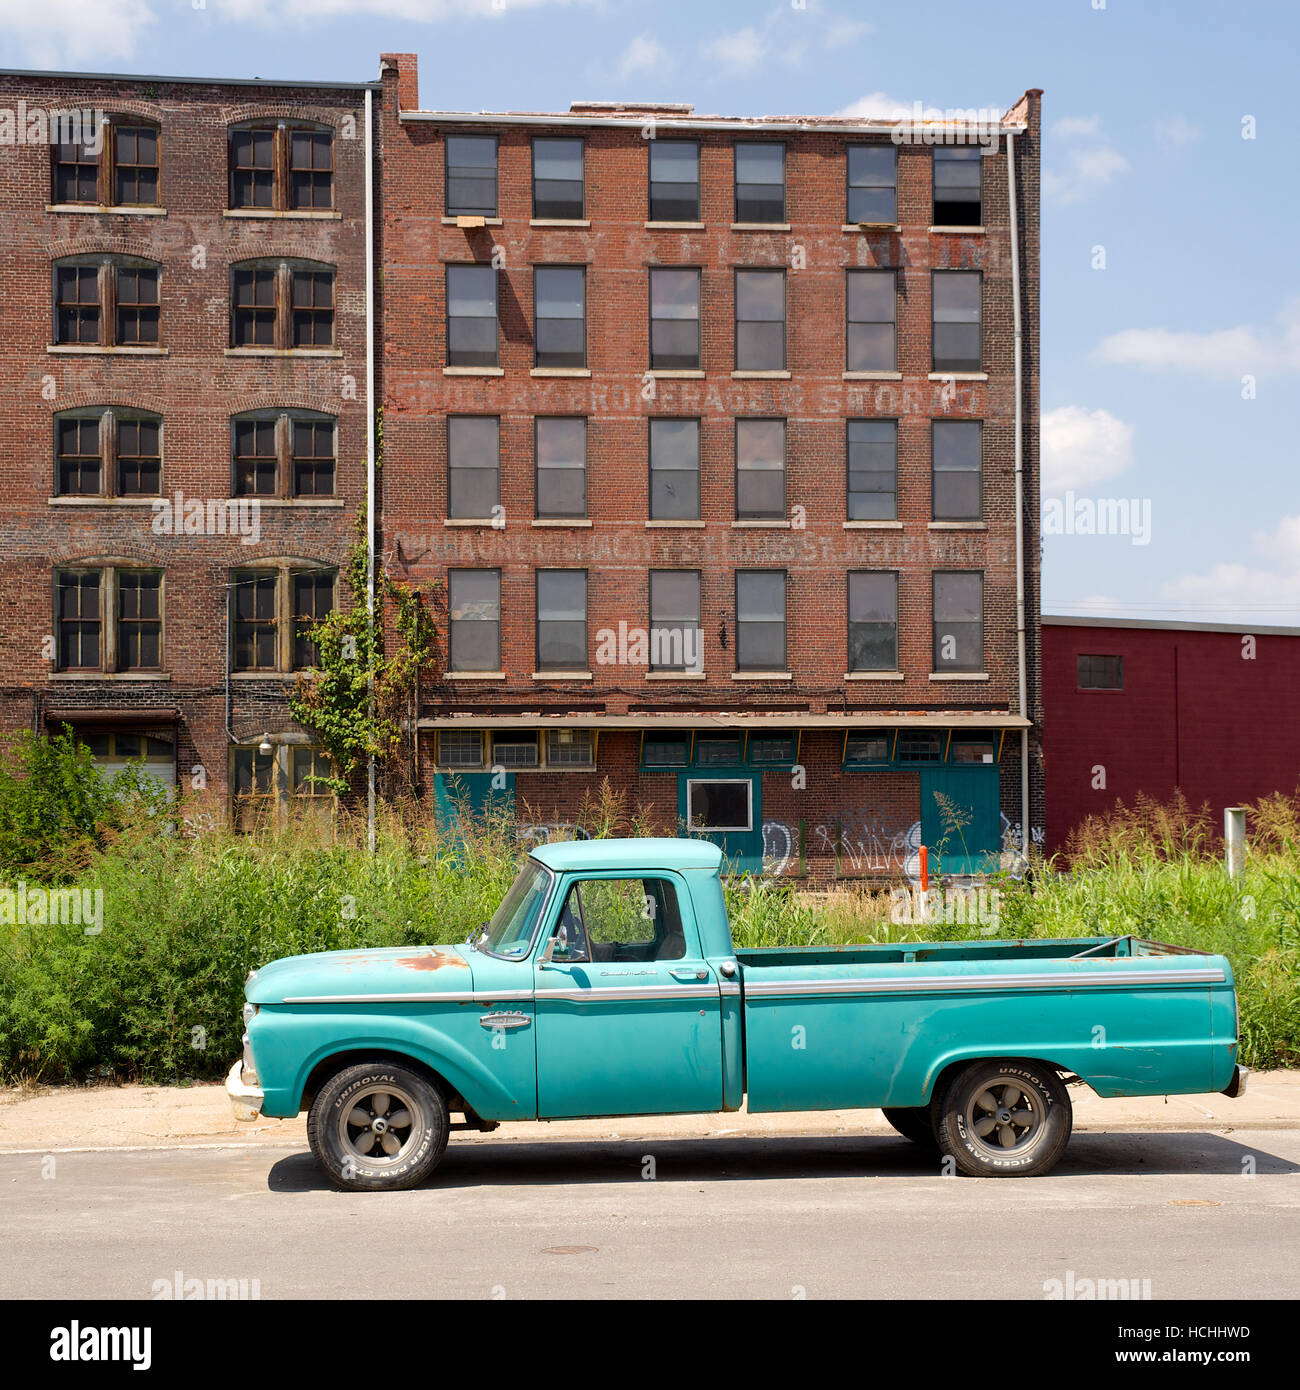 West Bottoms, Kansas City, Missouri, USA. Stock Photo